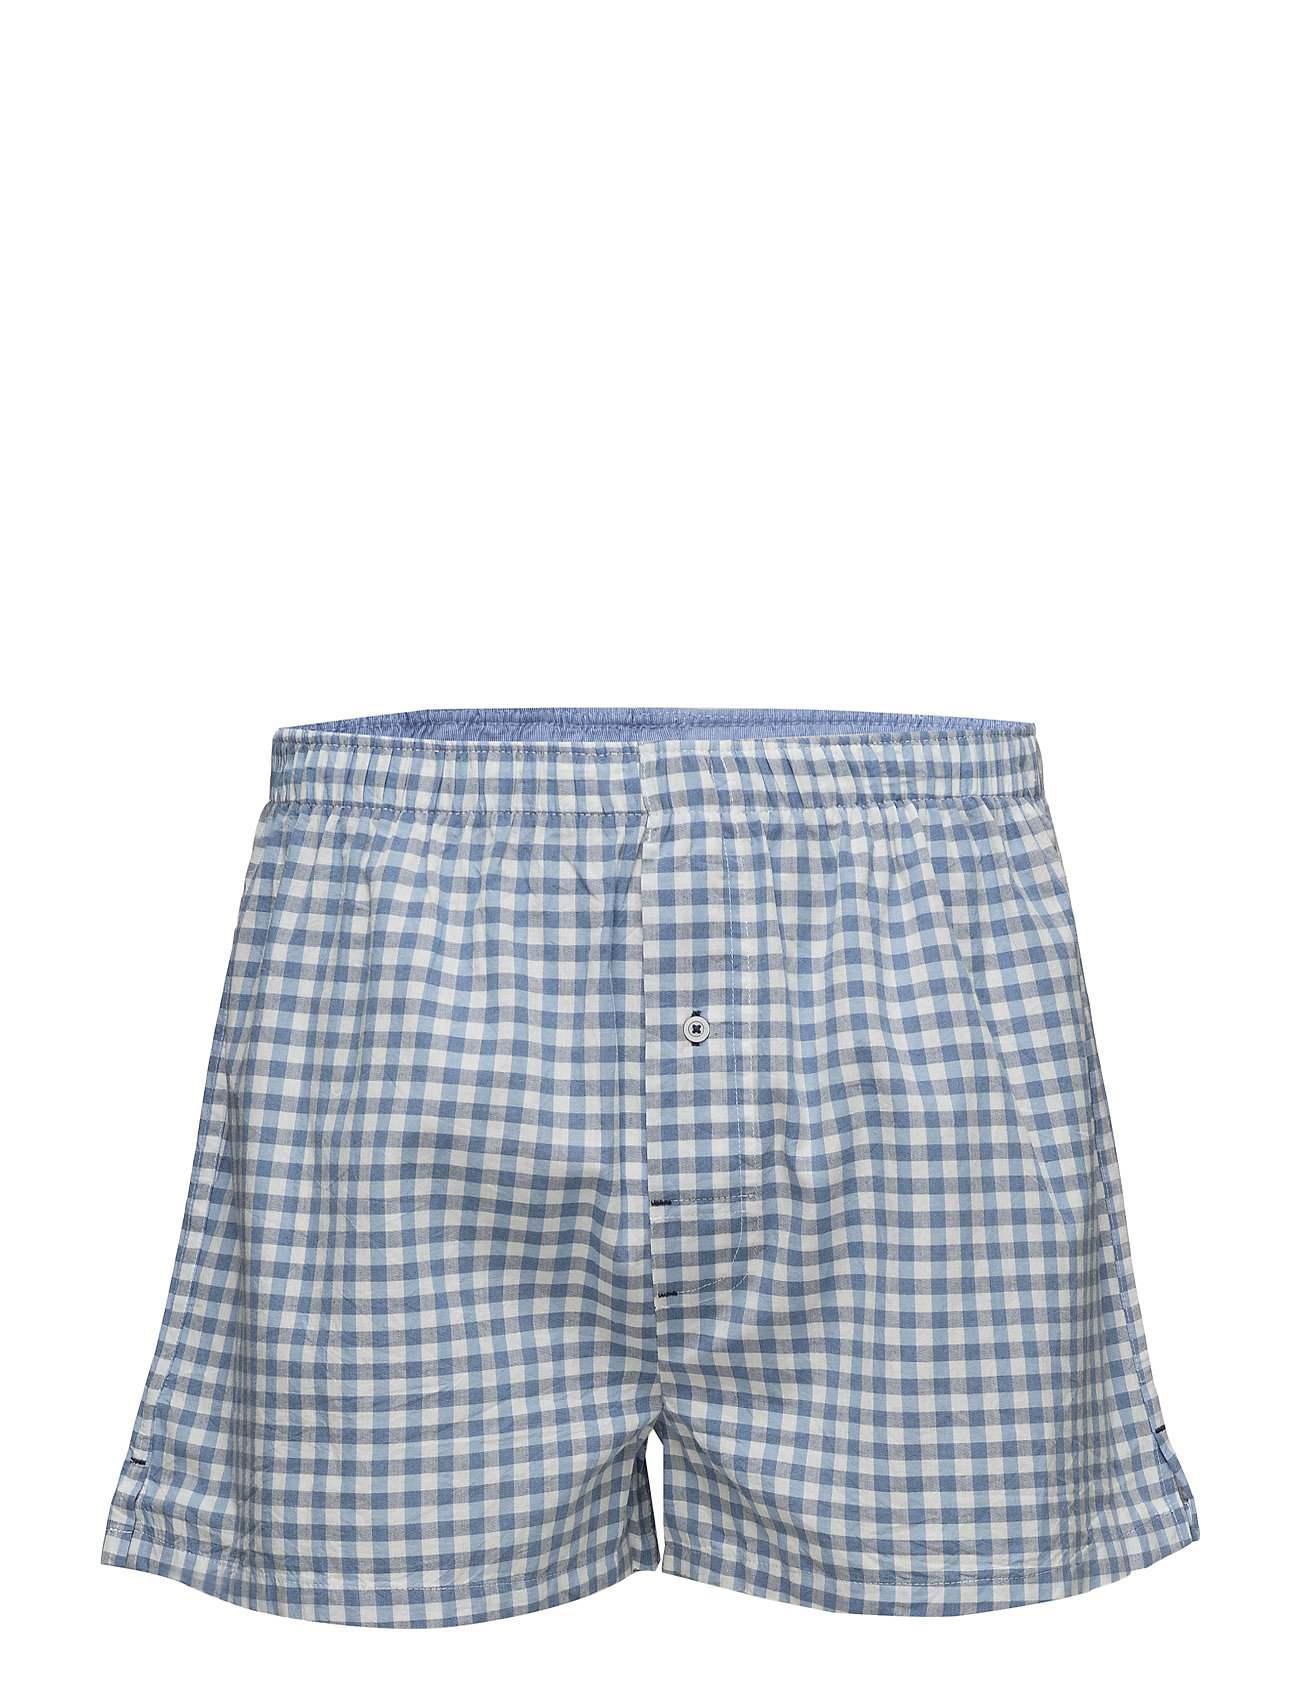 Check Cotton Boxer Shorts thumbnail